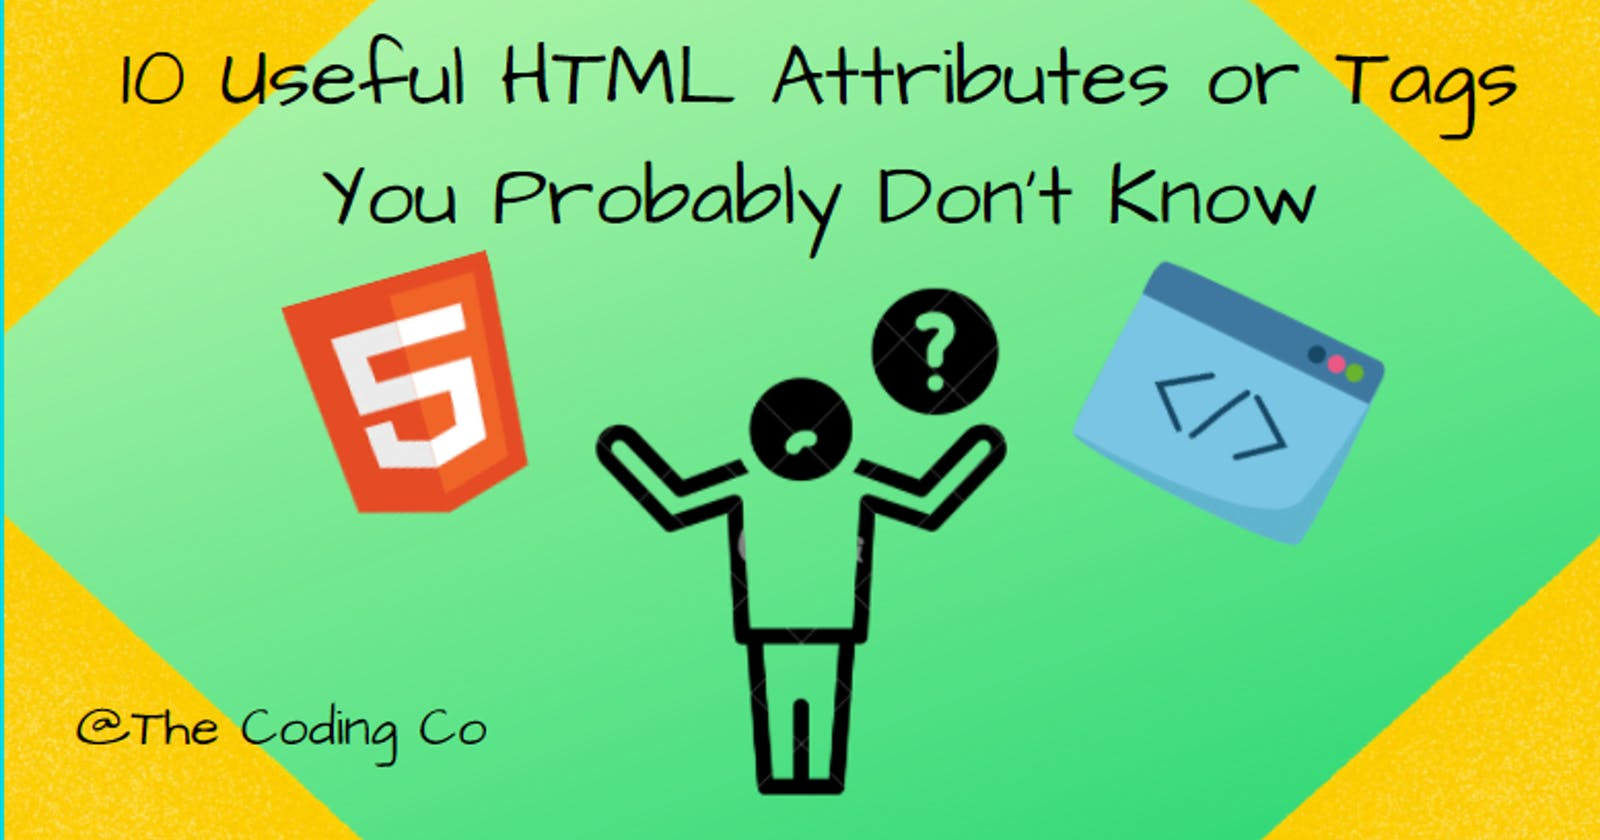 10 Useful HTML Attributes or Tags You Probably Don't Know